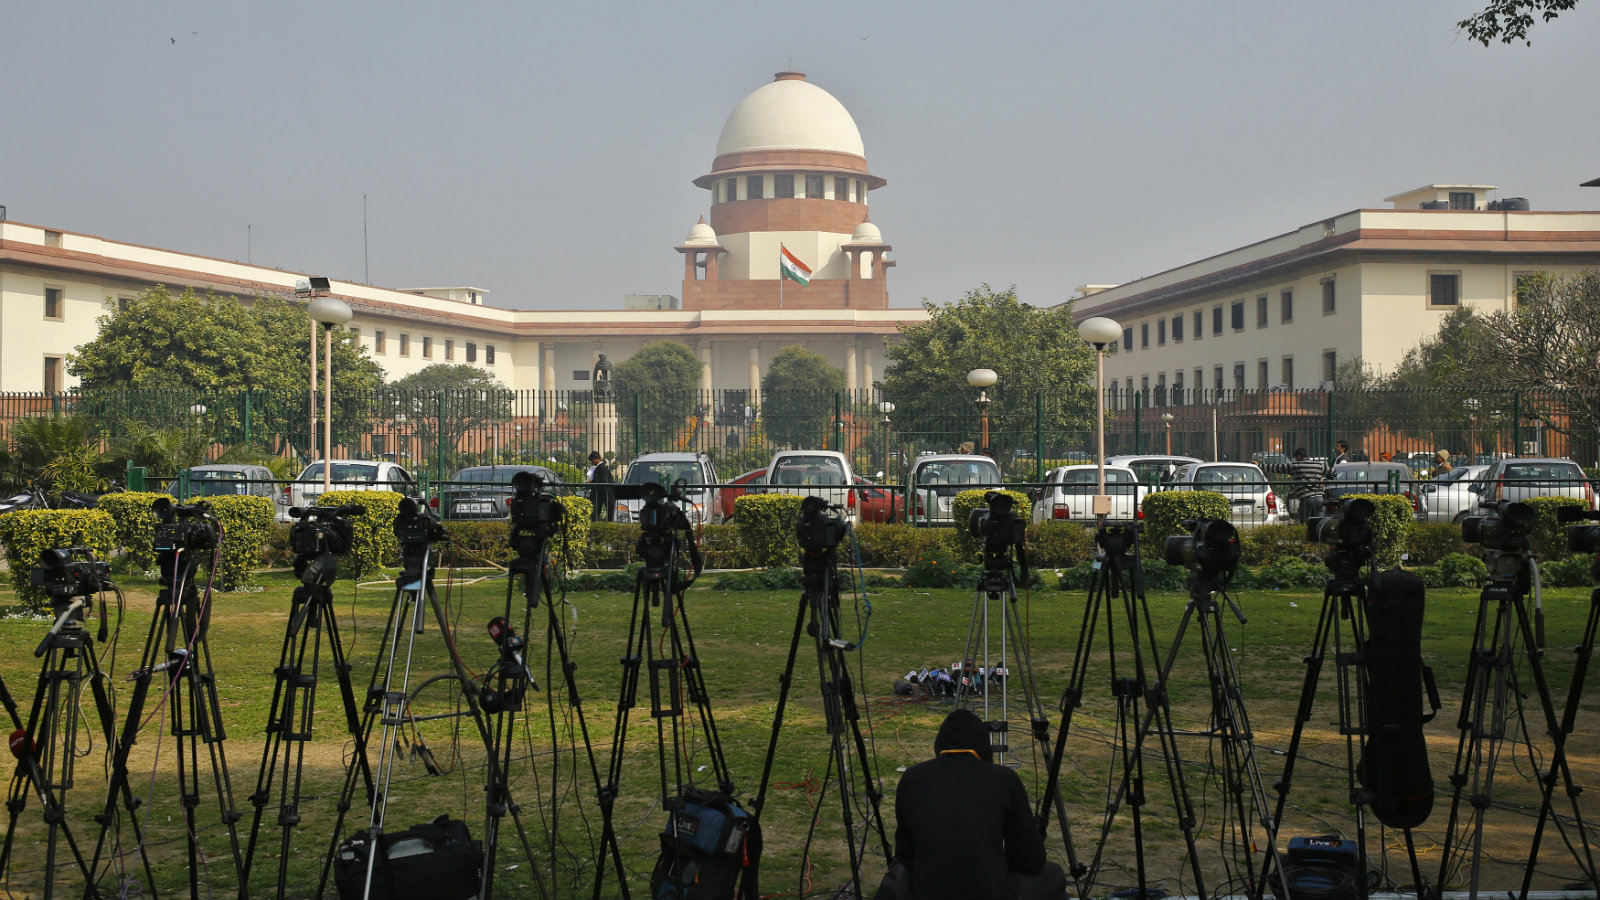 A television journalist sets his camera inside the premises of the Supreme Court in New Delhi February 18, 2014. India's Supreme Court commuted death sentences on three men for involvement in the killing of former prime minister Rajiv Gandhi to life imprisonment on Tuesday because of an 11-year delay in deciding on their petitions for mercy. Gandhi was killed by an ethnic Tamil suicide bomber while campaigning in an election in the southern Indian town of Sriperumbudur in May 1991.